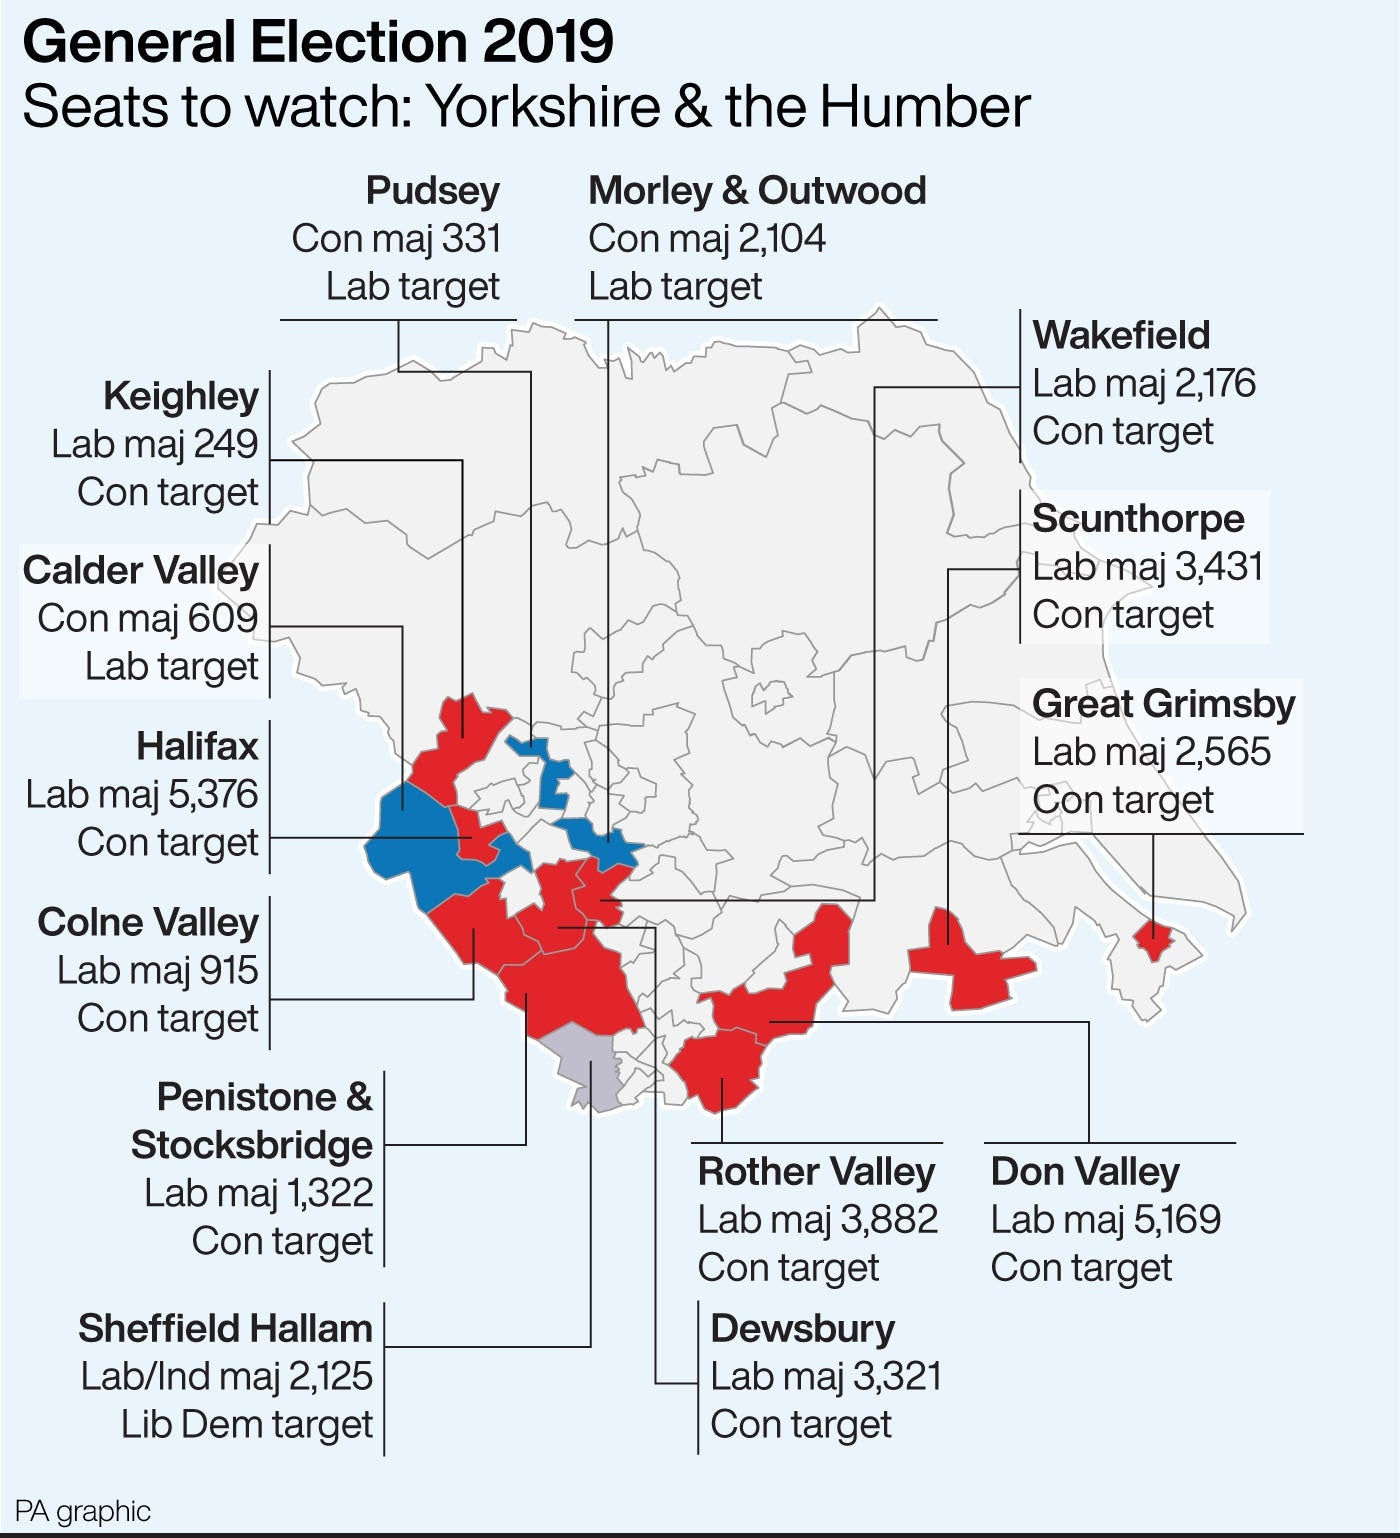 Seats to watch in Yorkshire